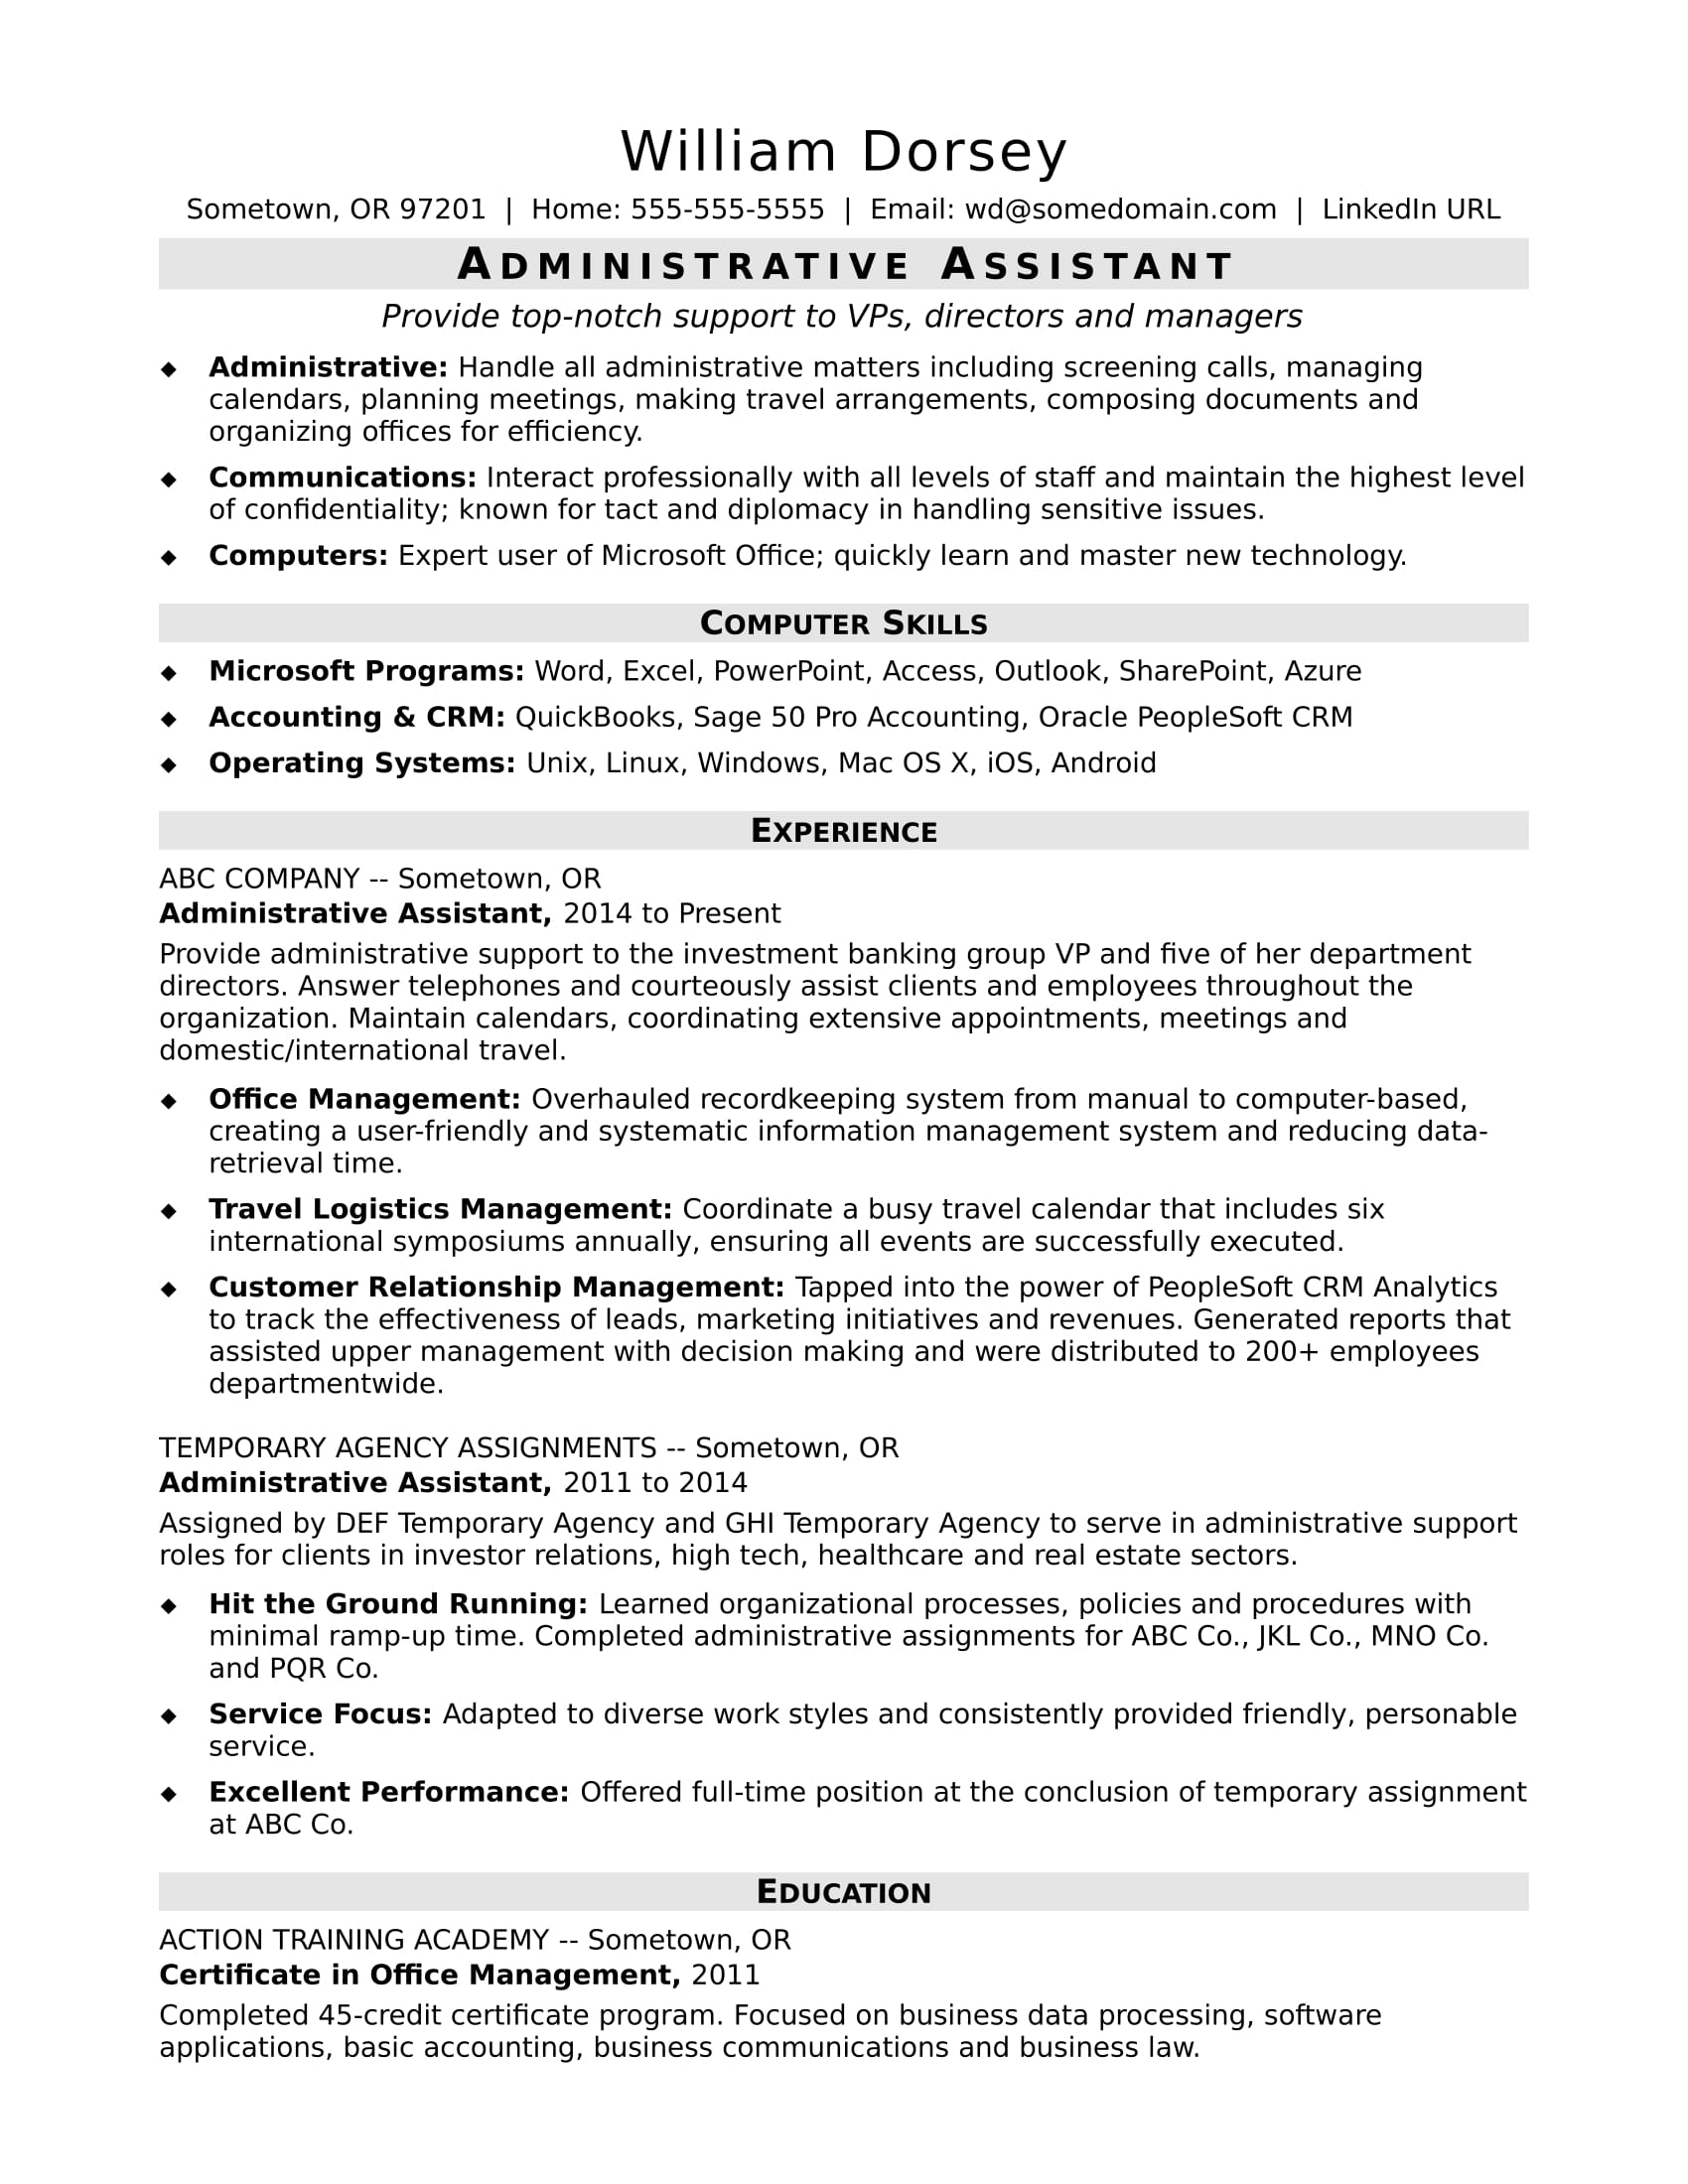 Sample Resume For A Midlevel Administrative Assistant  Senior Executive Assistant Resume